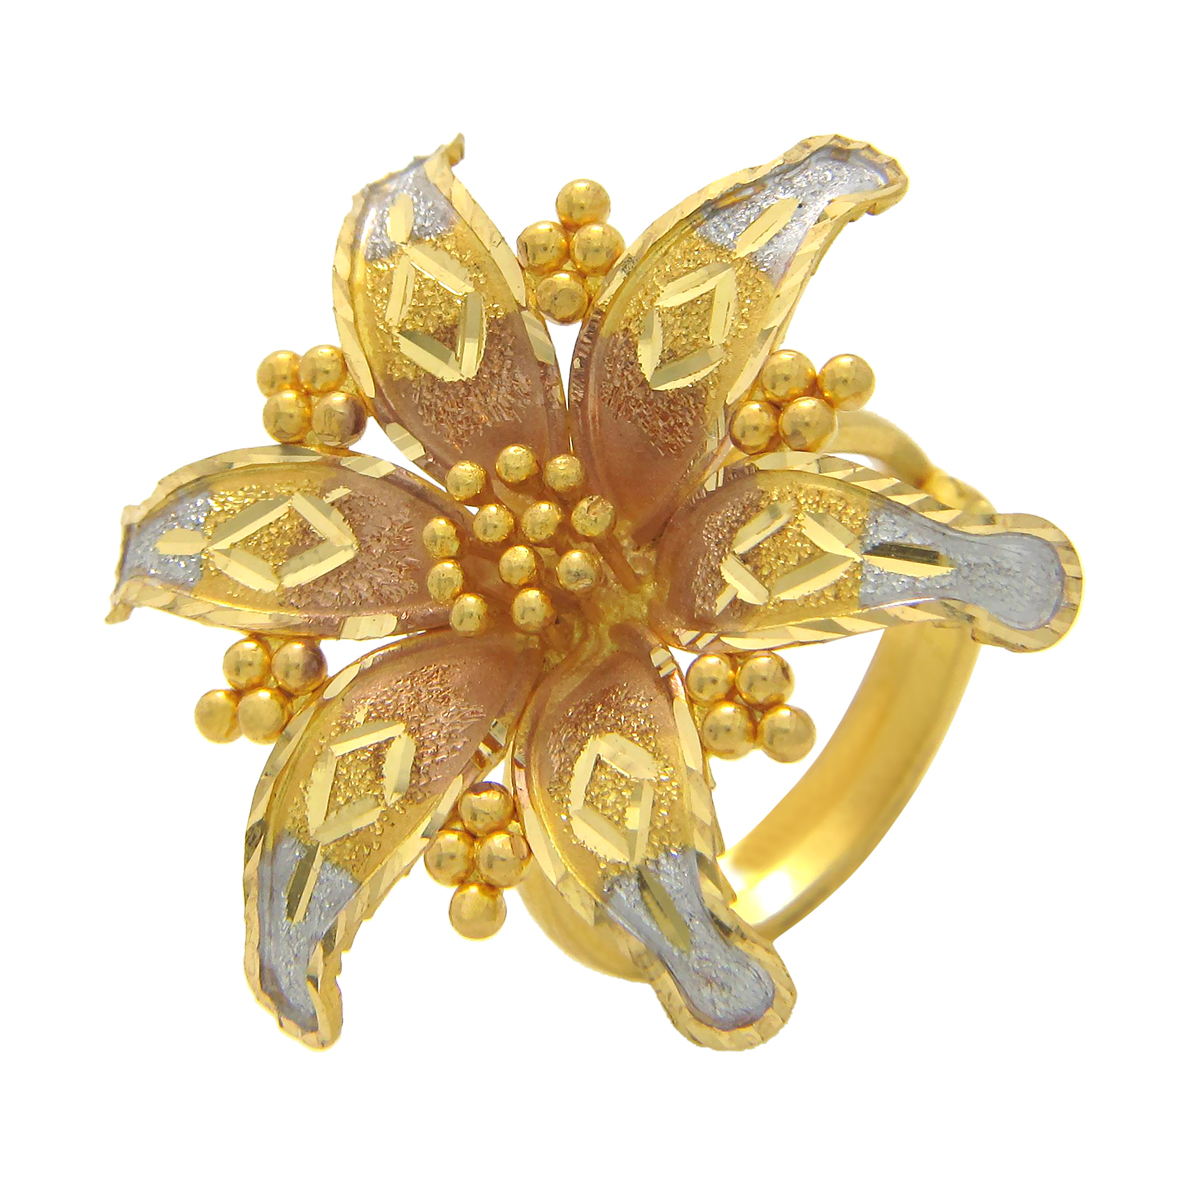 Popley 22Kt Gold Bandhan Ring - A53